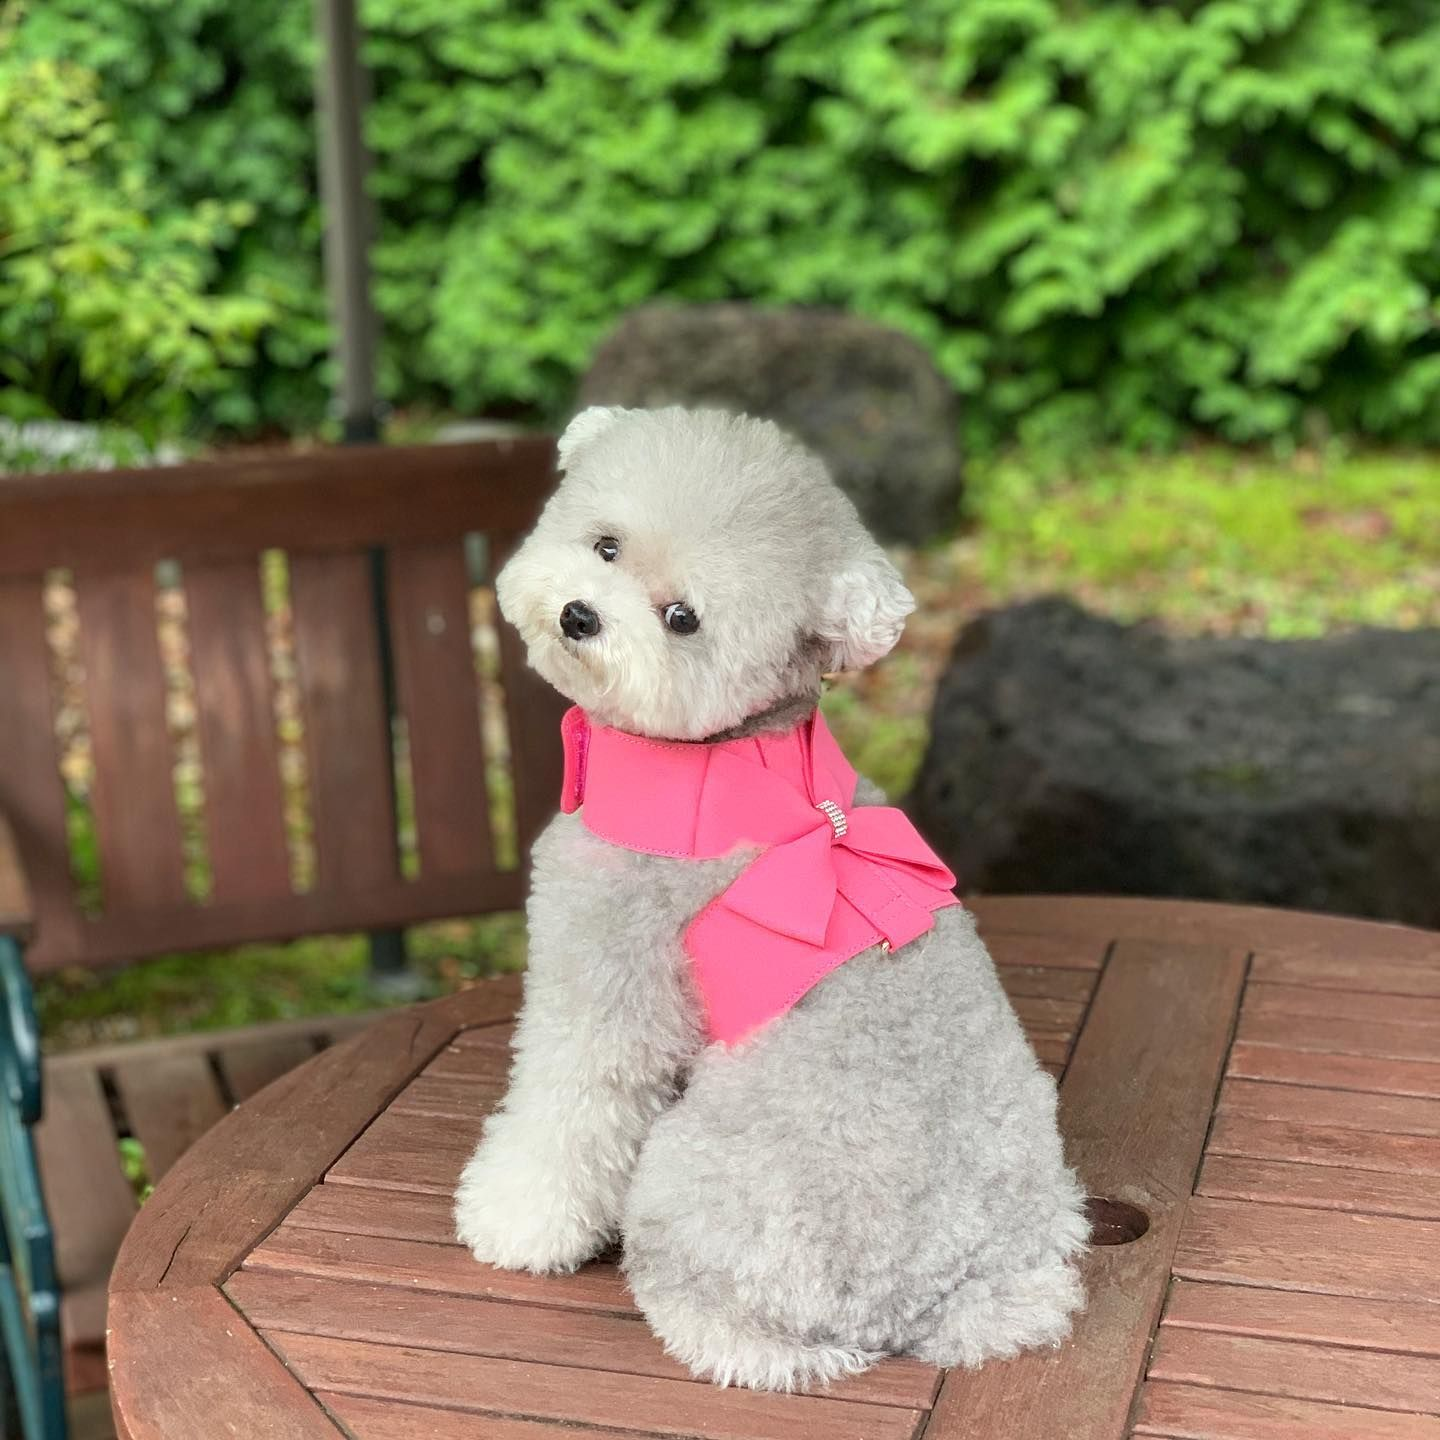 🐾❤Adorable Poodle or not? ➡️Check out hilarious gifts for Poodle lovers (link in bio: @PoodleLove365) funnygifts.shop/collections/Poodle-lover-gifts .  .  via @spicedogsss  #poodle #poodlelover #poodlelove #poodlelovers #poodledog #poodledogs #poodlepuppy #poodlepuppies #cutepoodle #poodlecute